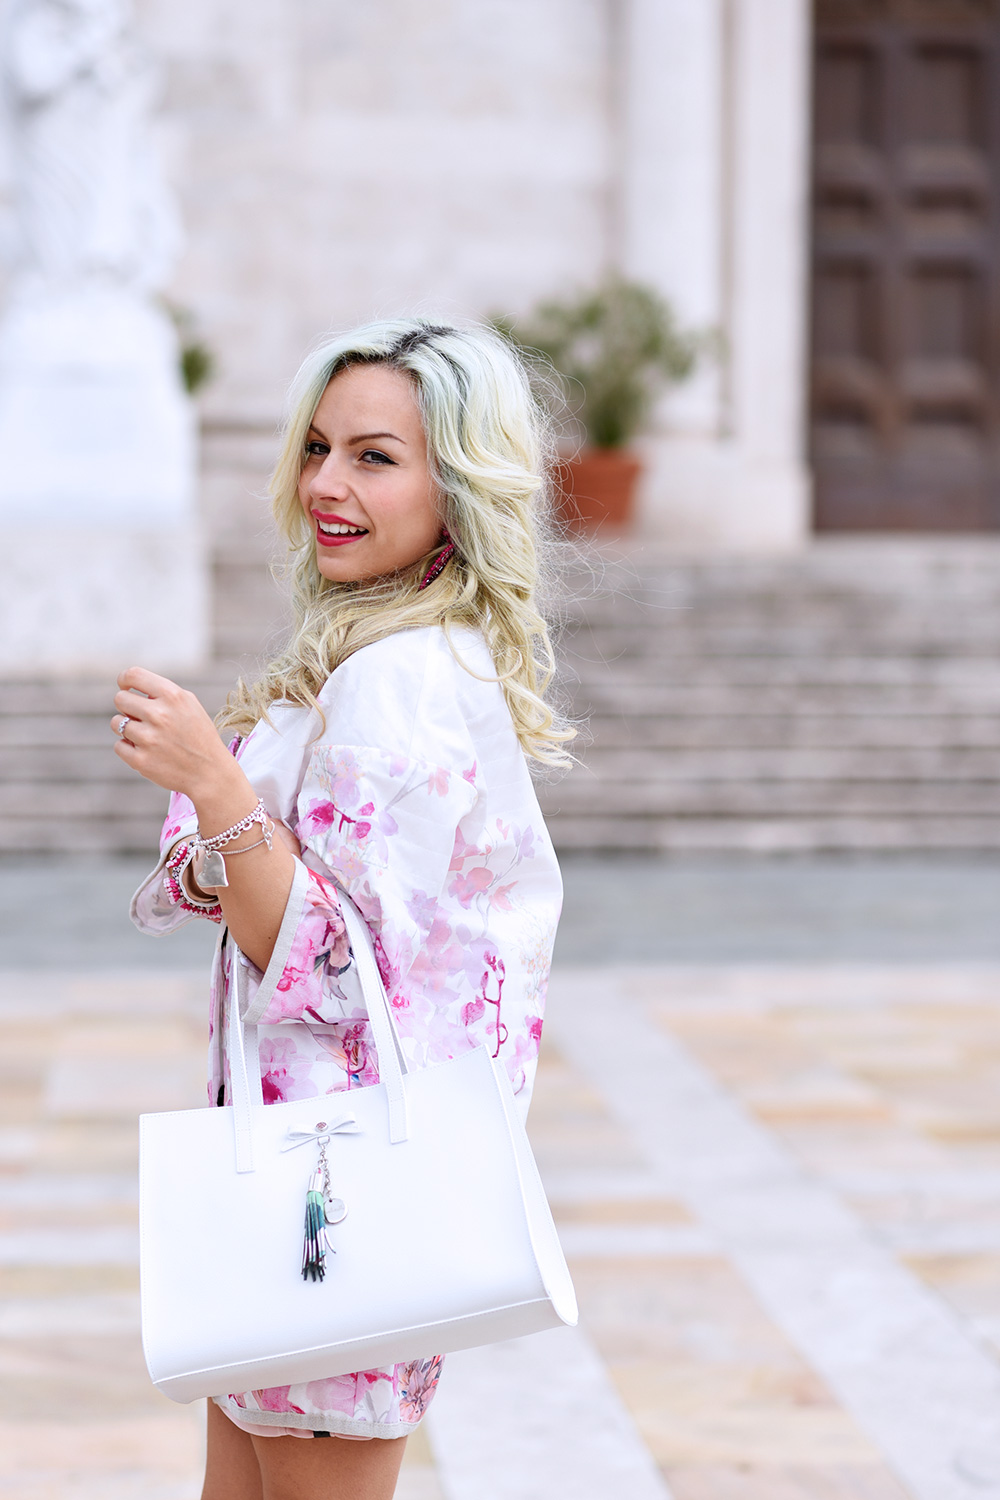 Loristella borse, borse in pelle primavera/estate 2015, Giorgia&Johns abbigliamento, come indossare il trench, spolverini per la primavera - idee look fashion blogger It-Girl by Eleonora Petrella